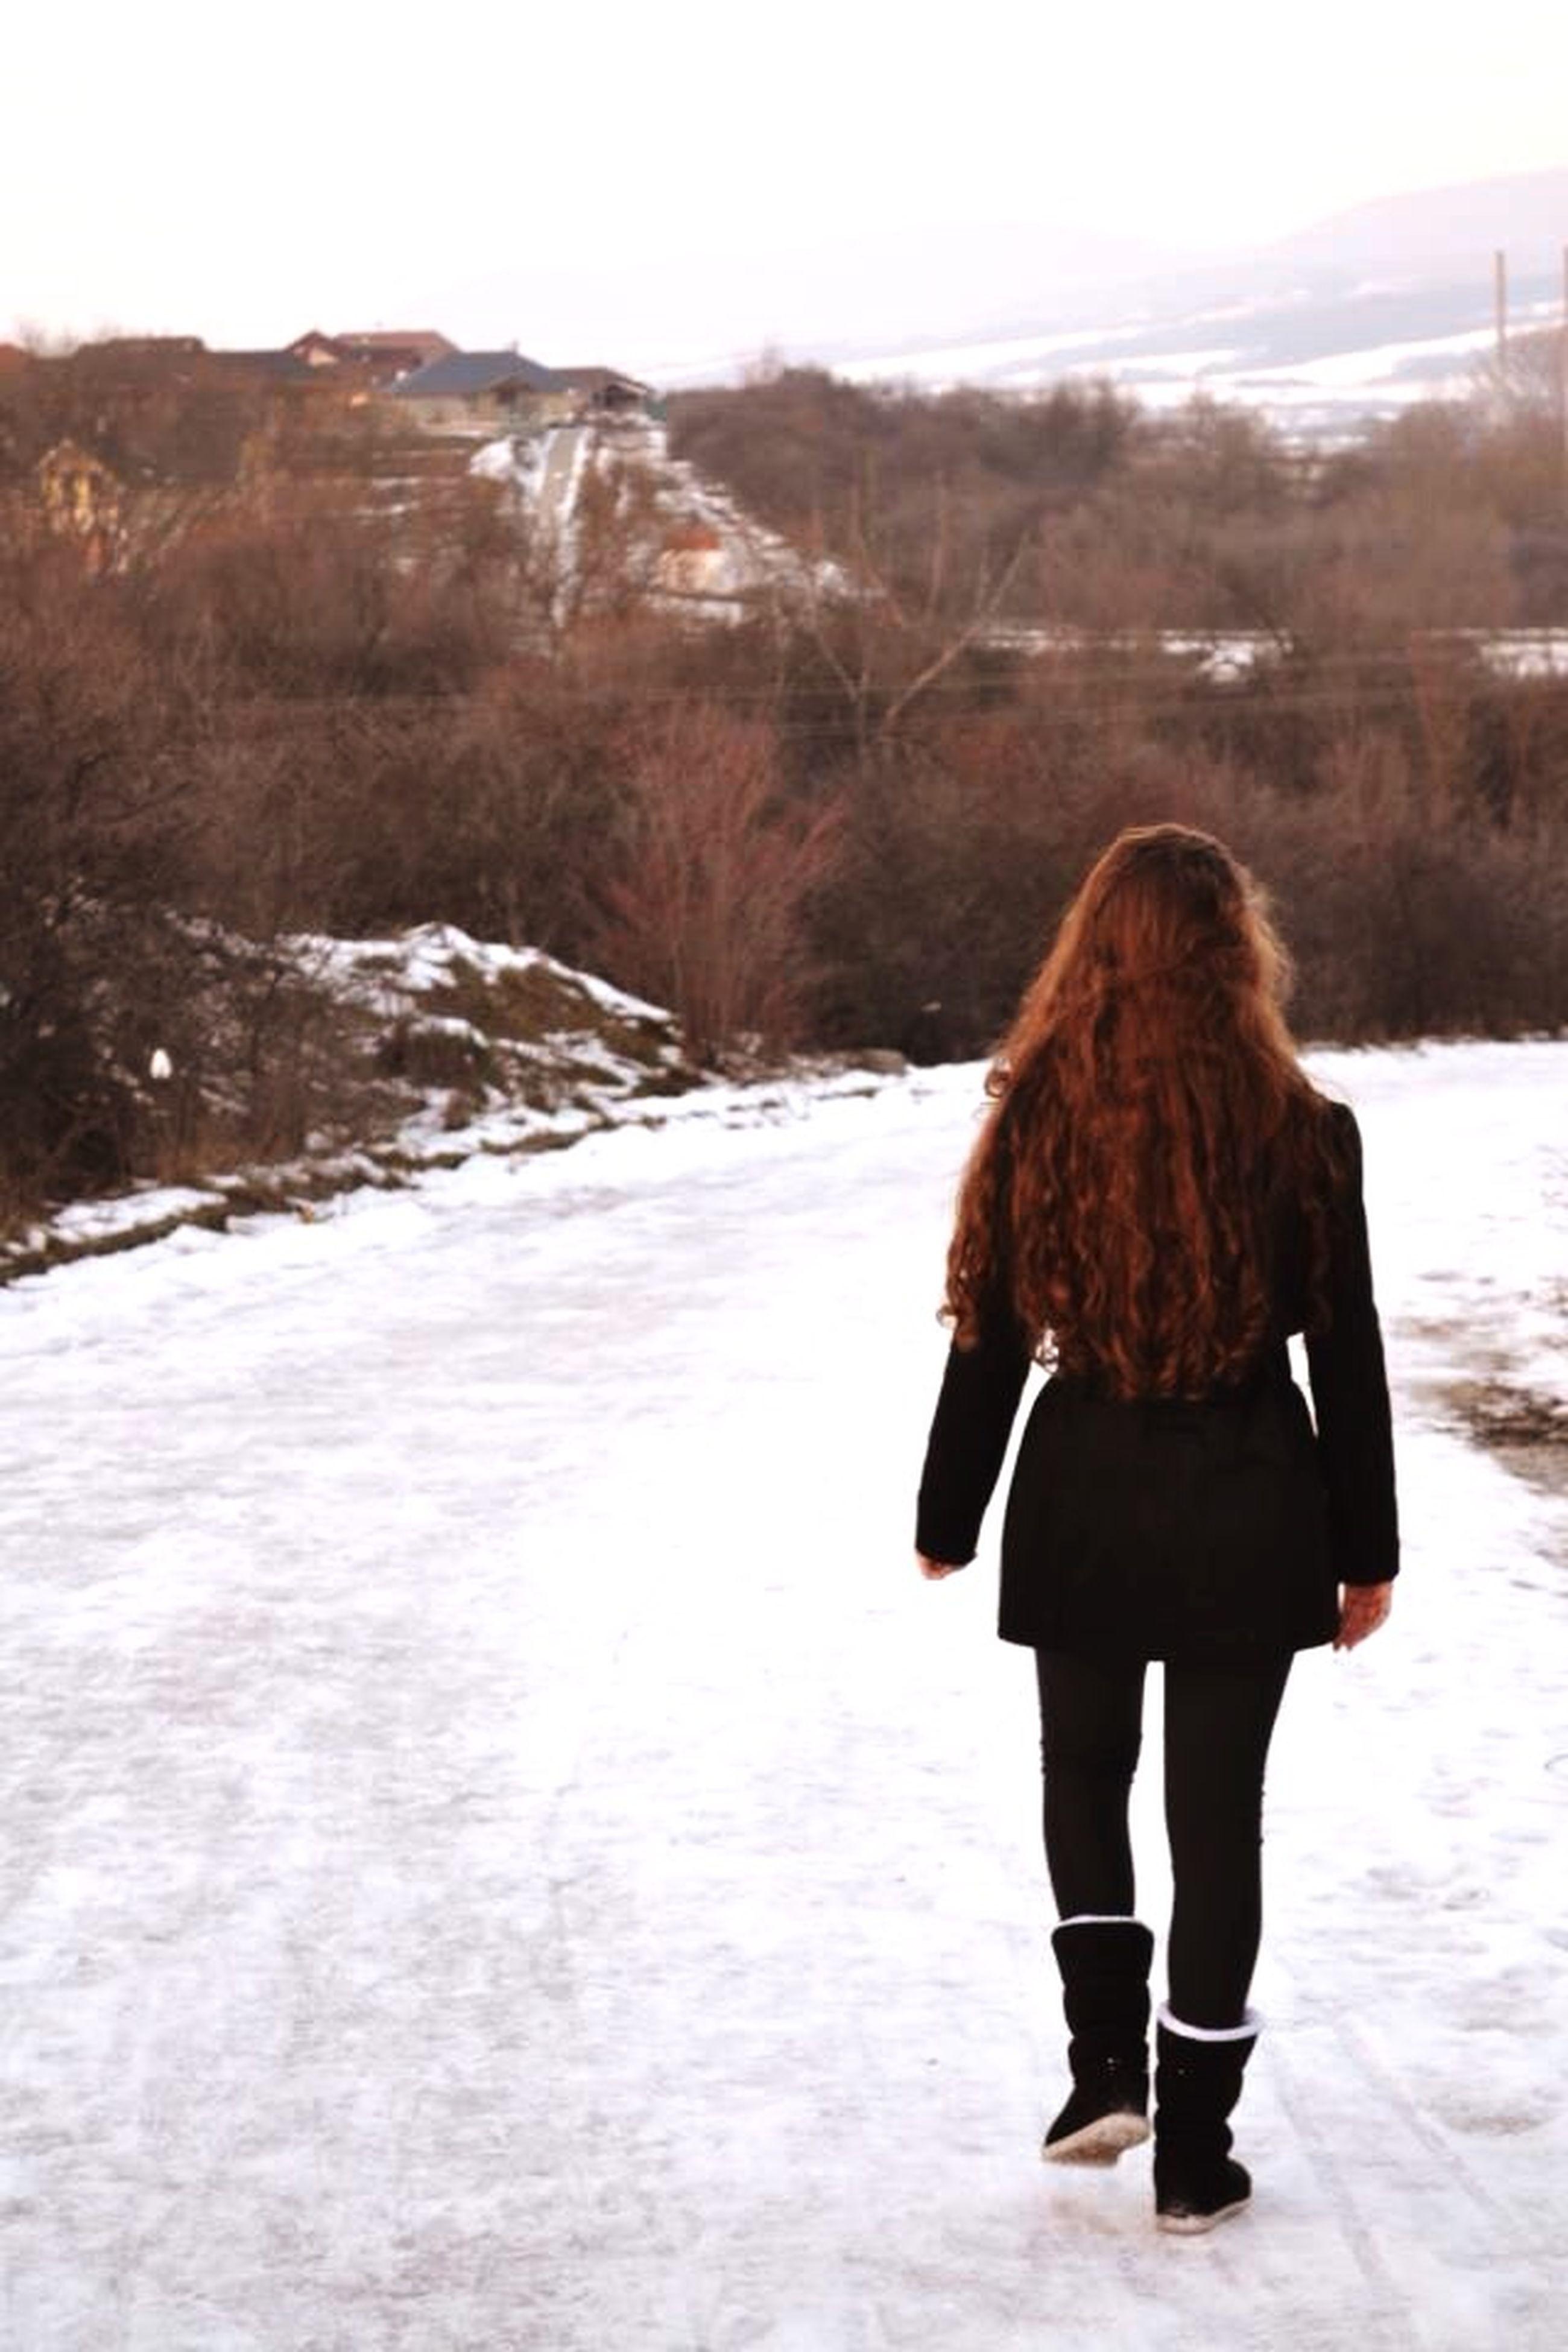 rear view, lifestyles, water, leisure activity, standing, full length, tranquil scene, winter, snow, tranquility, scenics, cold temperature, nature, beauty in nature, person, vacations, walking, mountain